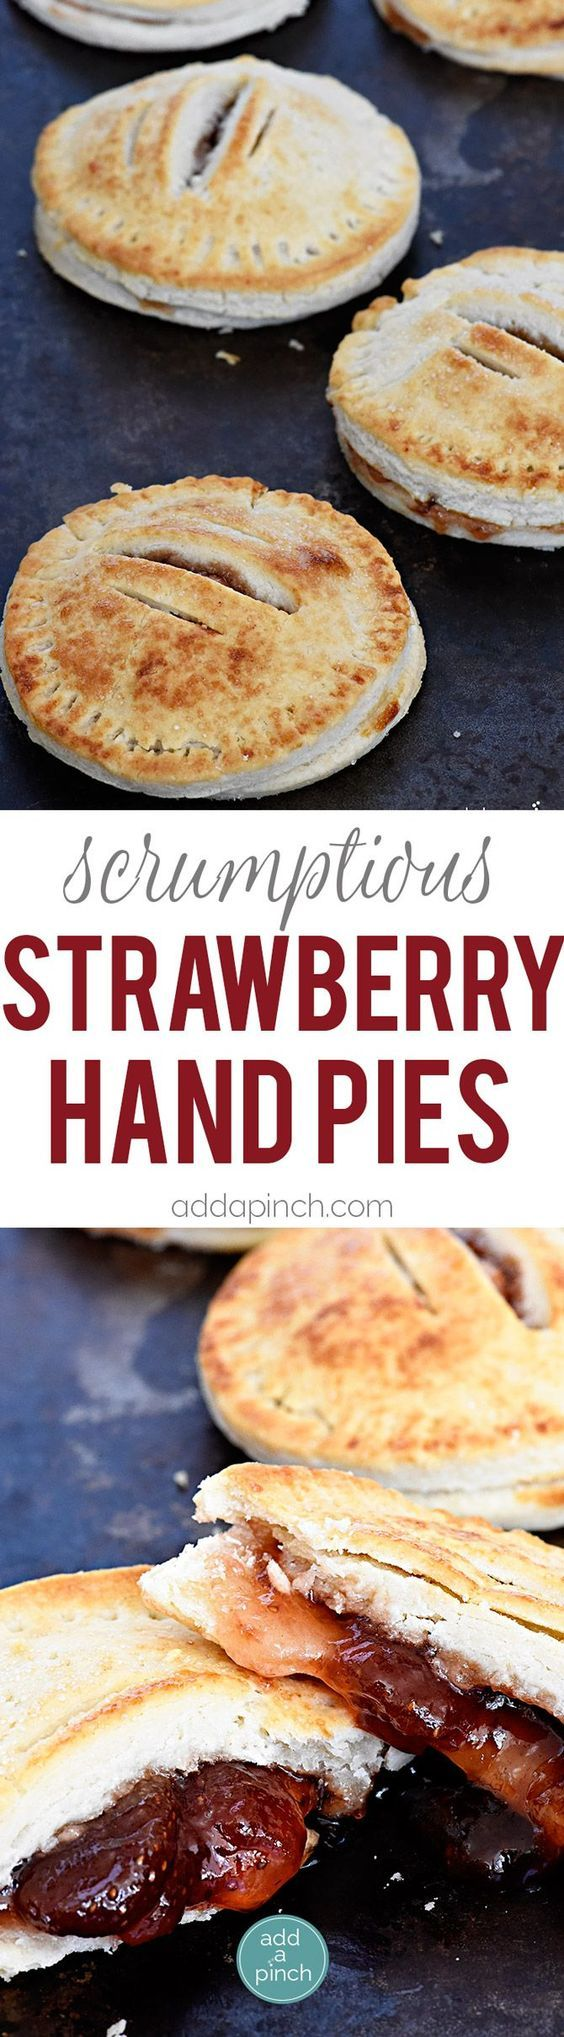 Simple strawberry hand pies are the cutest and simplest little portable pies perfect for sharing and devouring! // addapinch.com